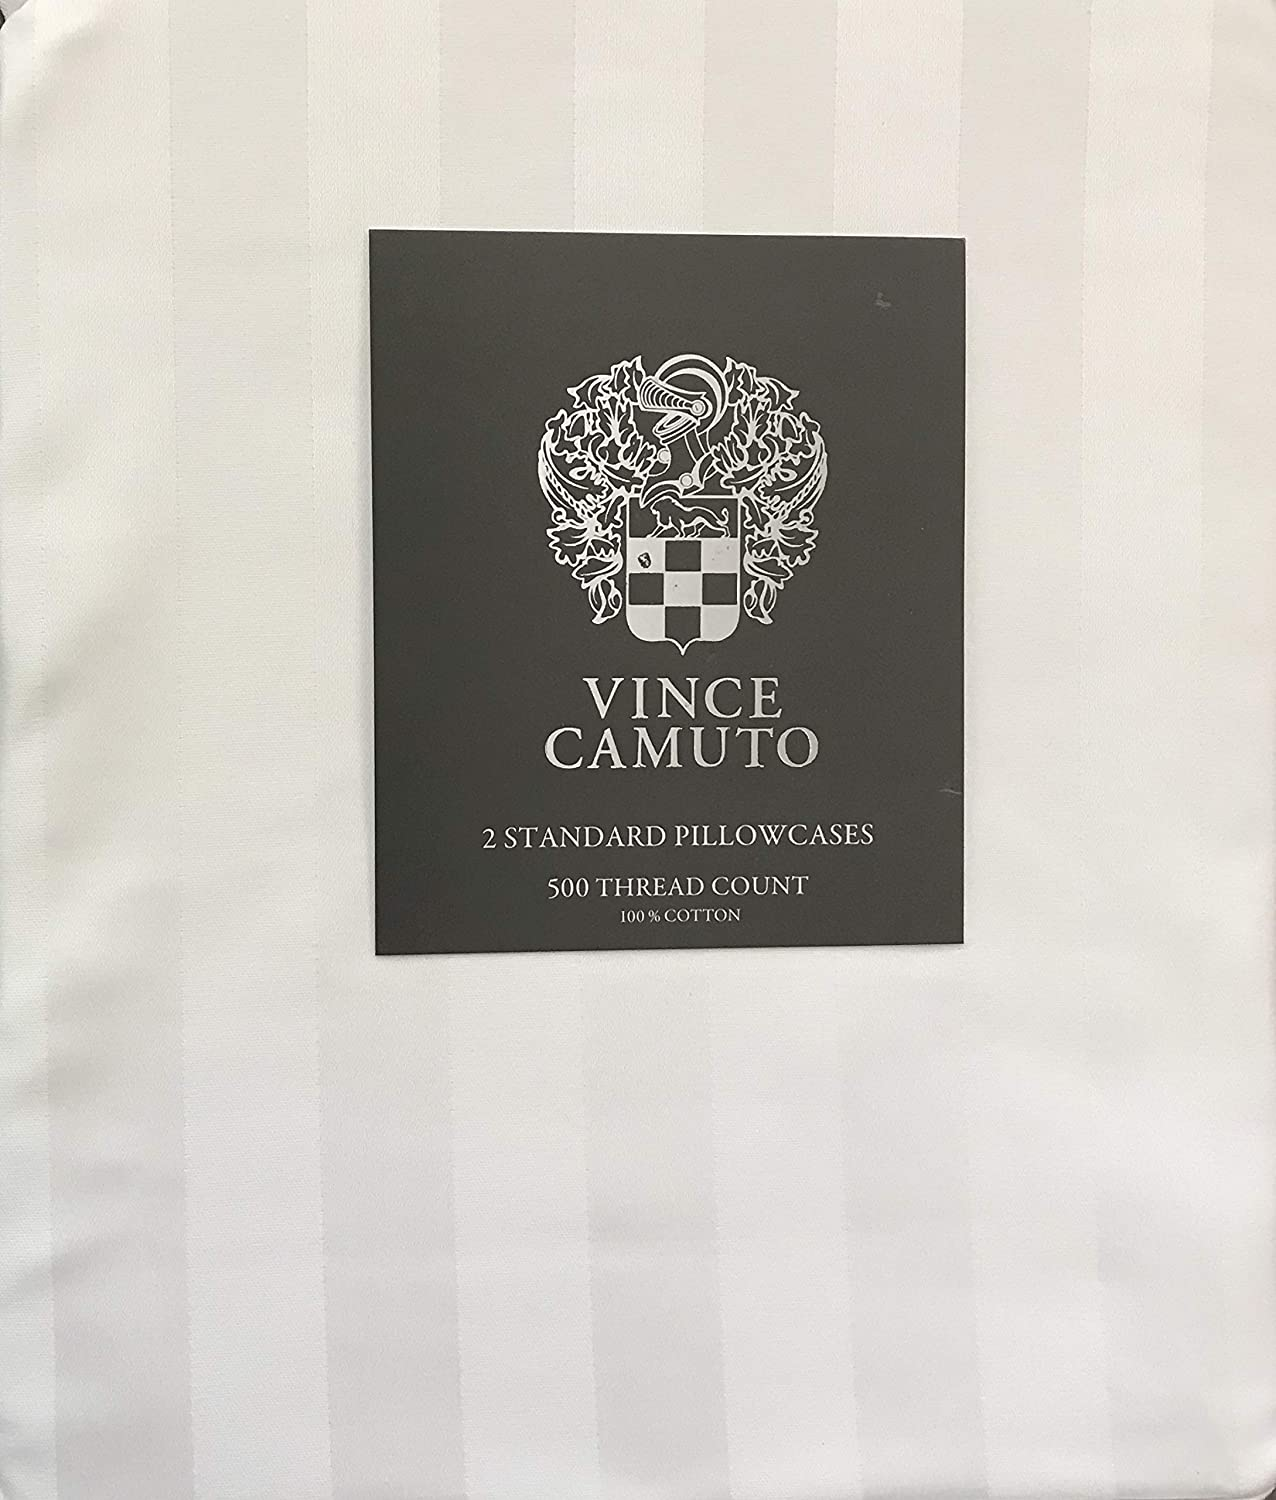 Vince Camuto 500 Thread Count 100% Cotton Standard Pillowcases (Set of 2, White Stripe)